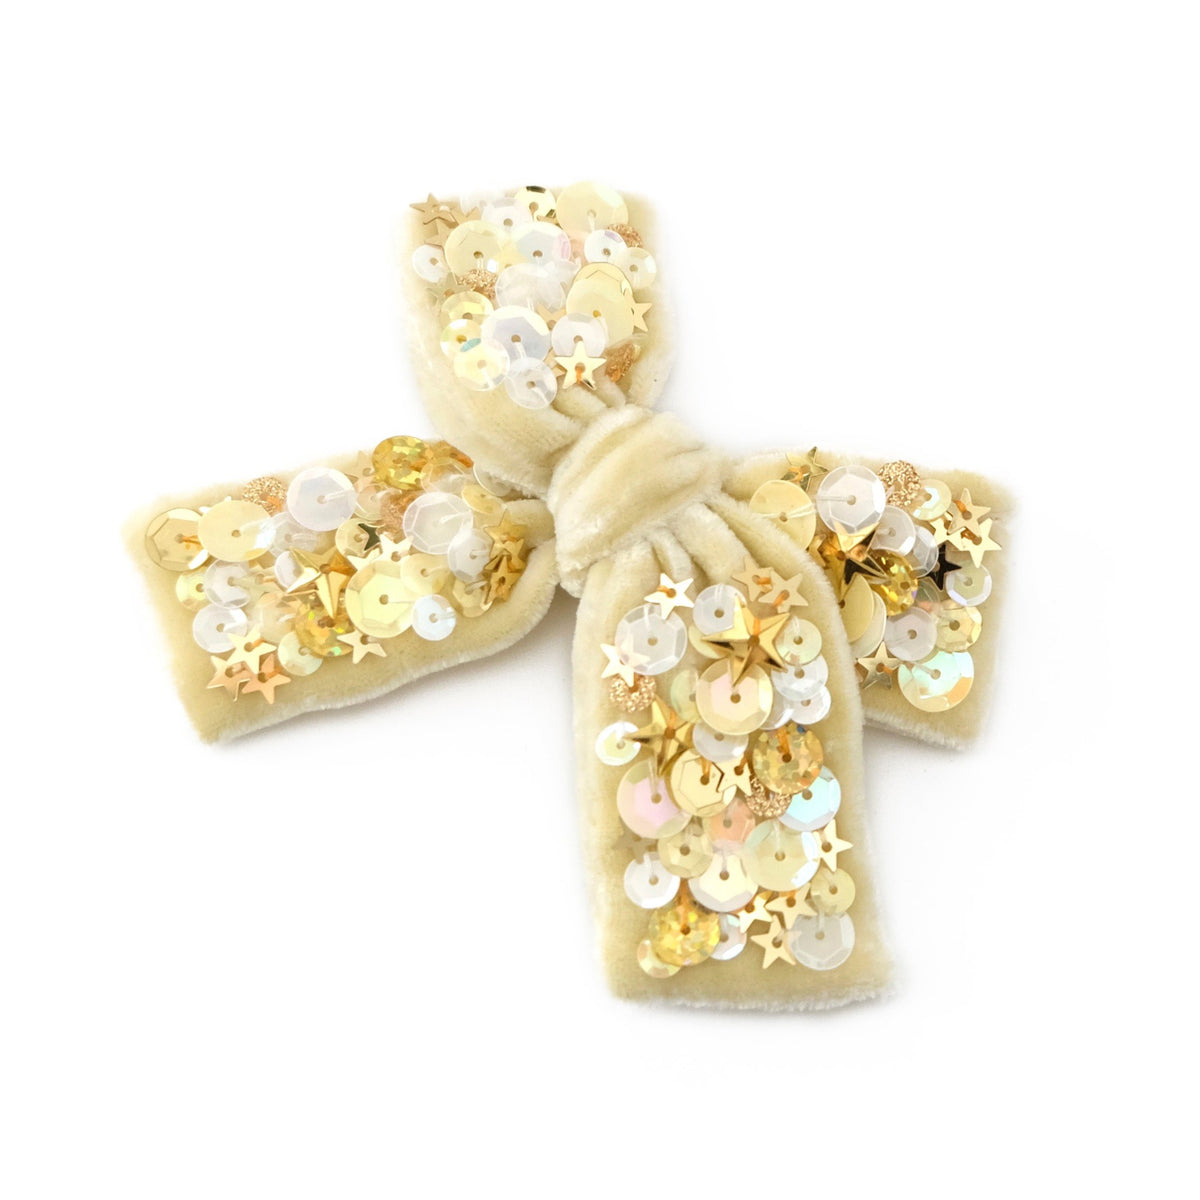 Velvet hair bow with  round and star shaped sequin in banana cream color.